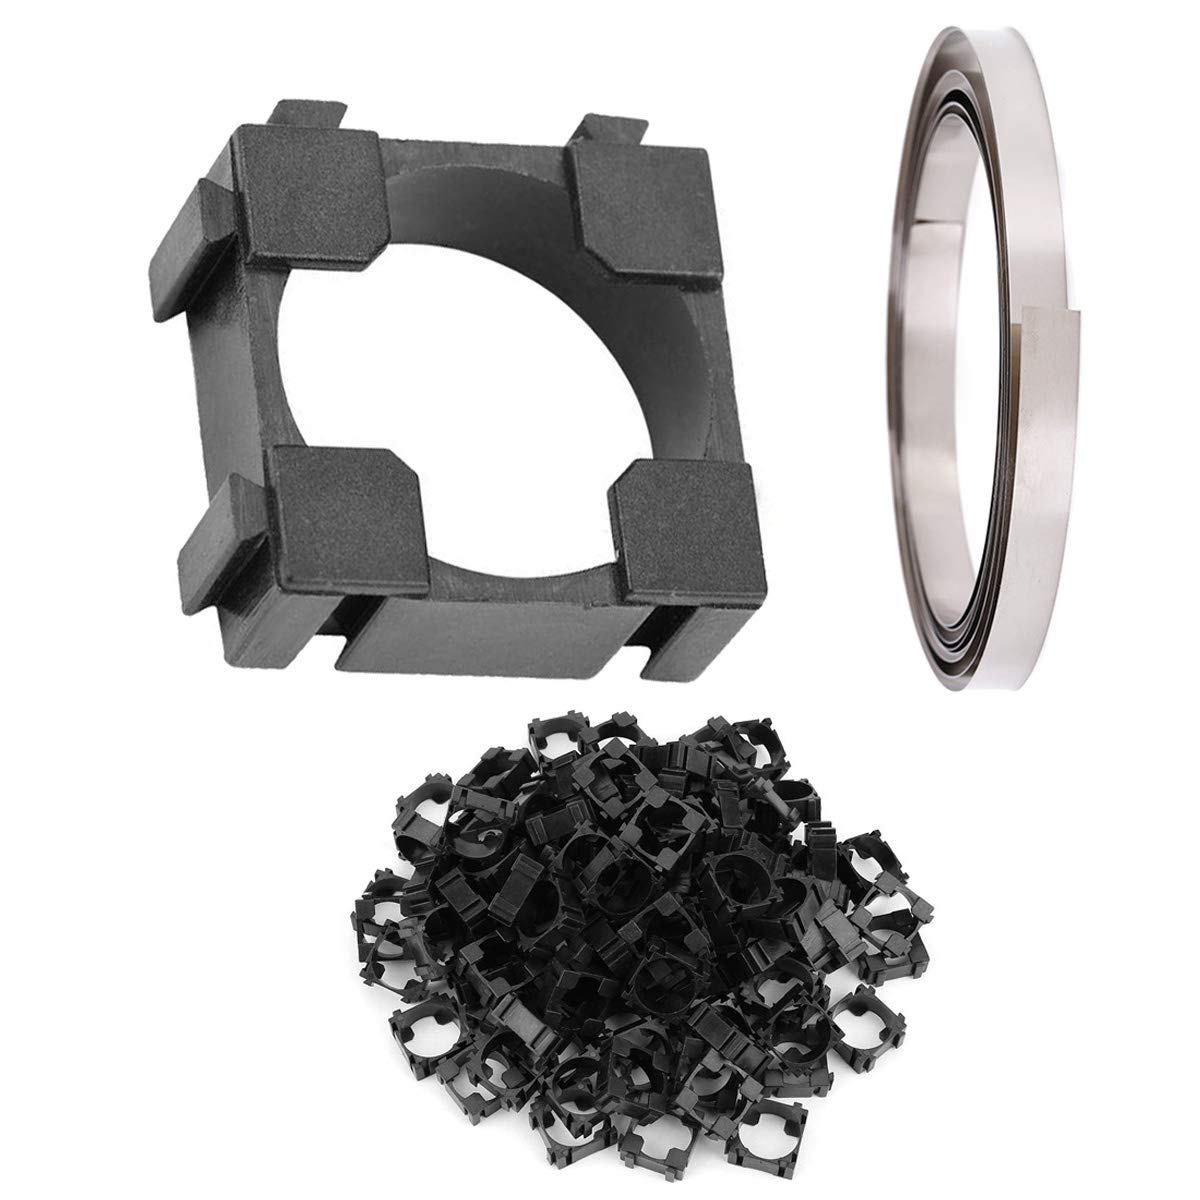 DAOKI 100PCS 18650 Max 86% OFF Lithium Battery Cell Plastic Bracket Holder Inventory cleanup selling sale L